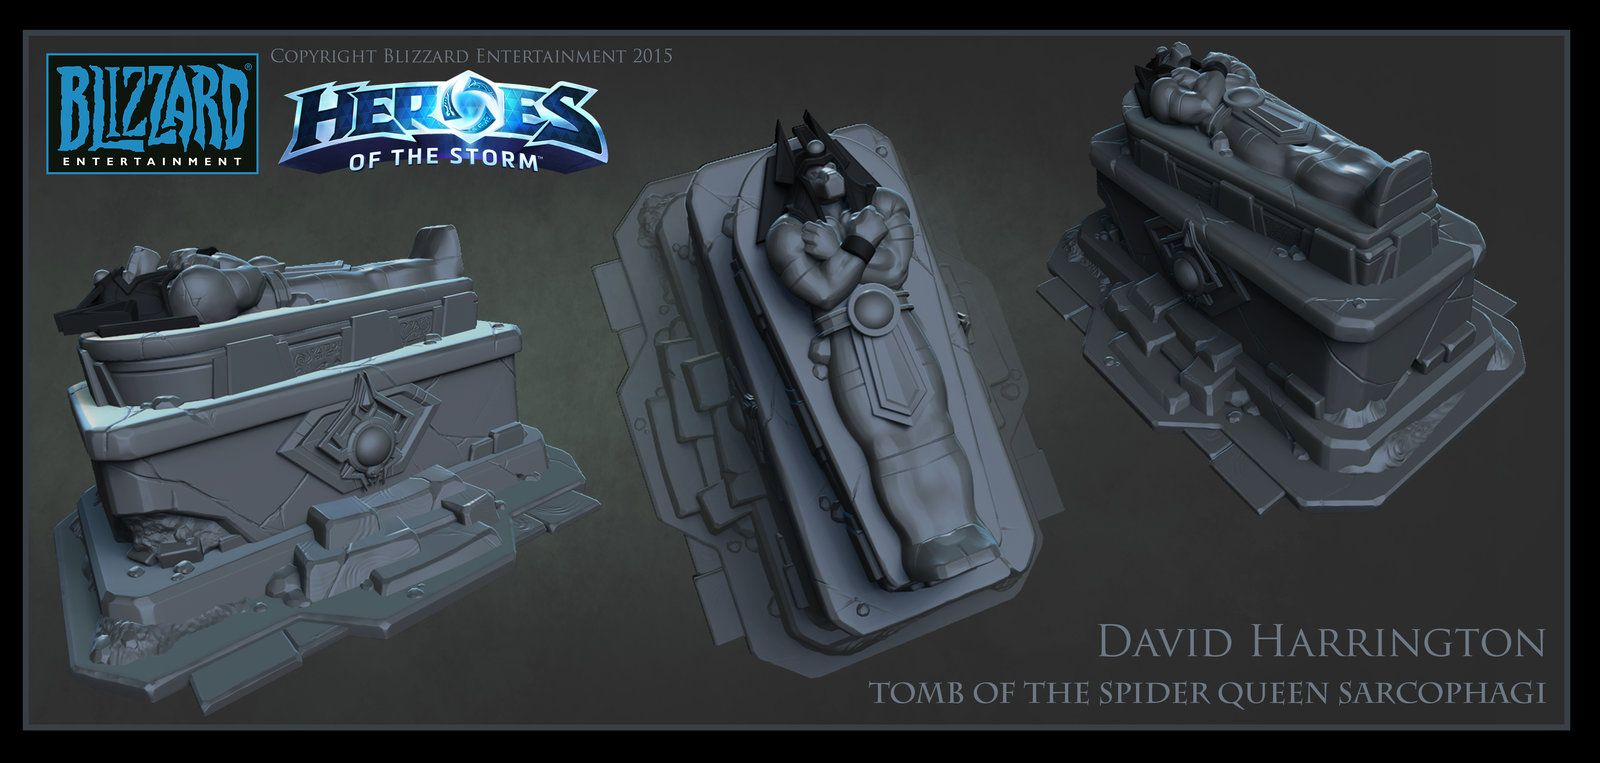 Heroes Of The Storm - Tomb Of The Spider Queen Sarcophagi, David Harrington on ArtStation at https://www.artstation.com/artwork/heroes-of-the-storm-tomb-of-the-spider-queen-sarcophagi